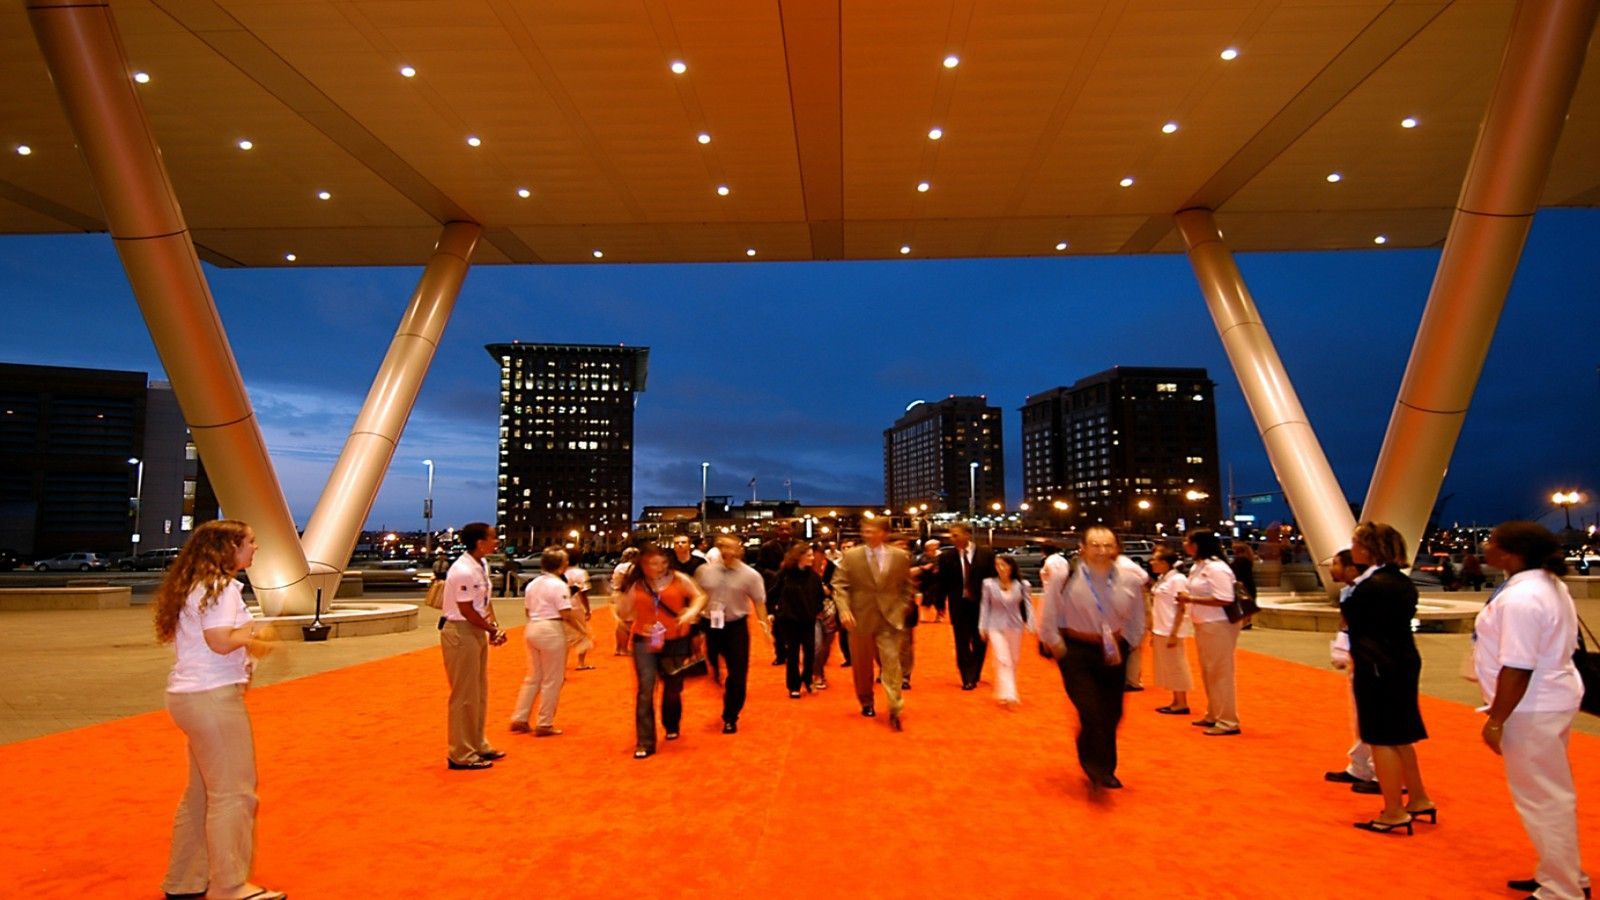 Things to do in Boston - Convention Center